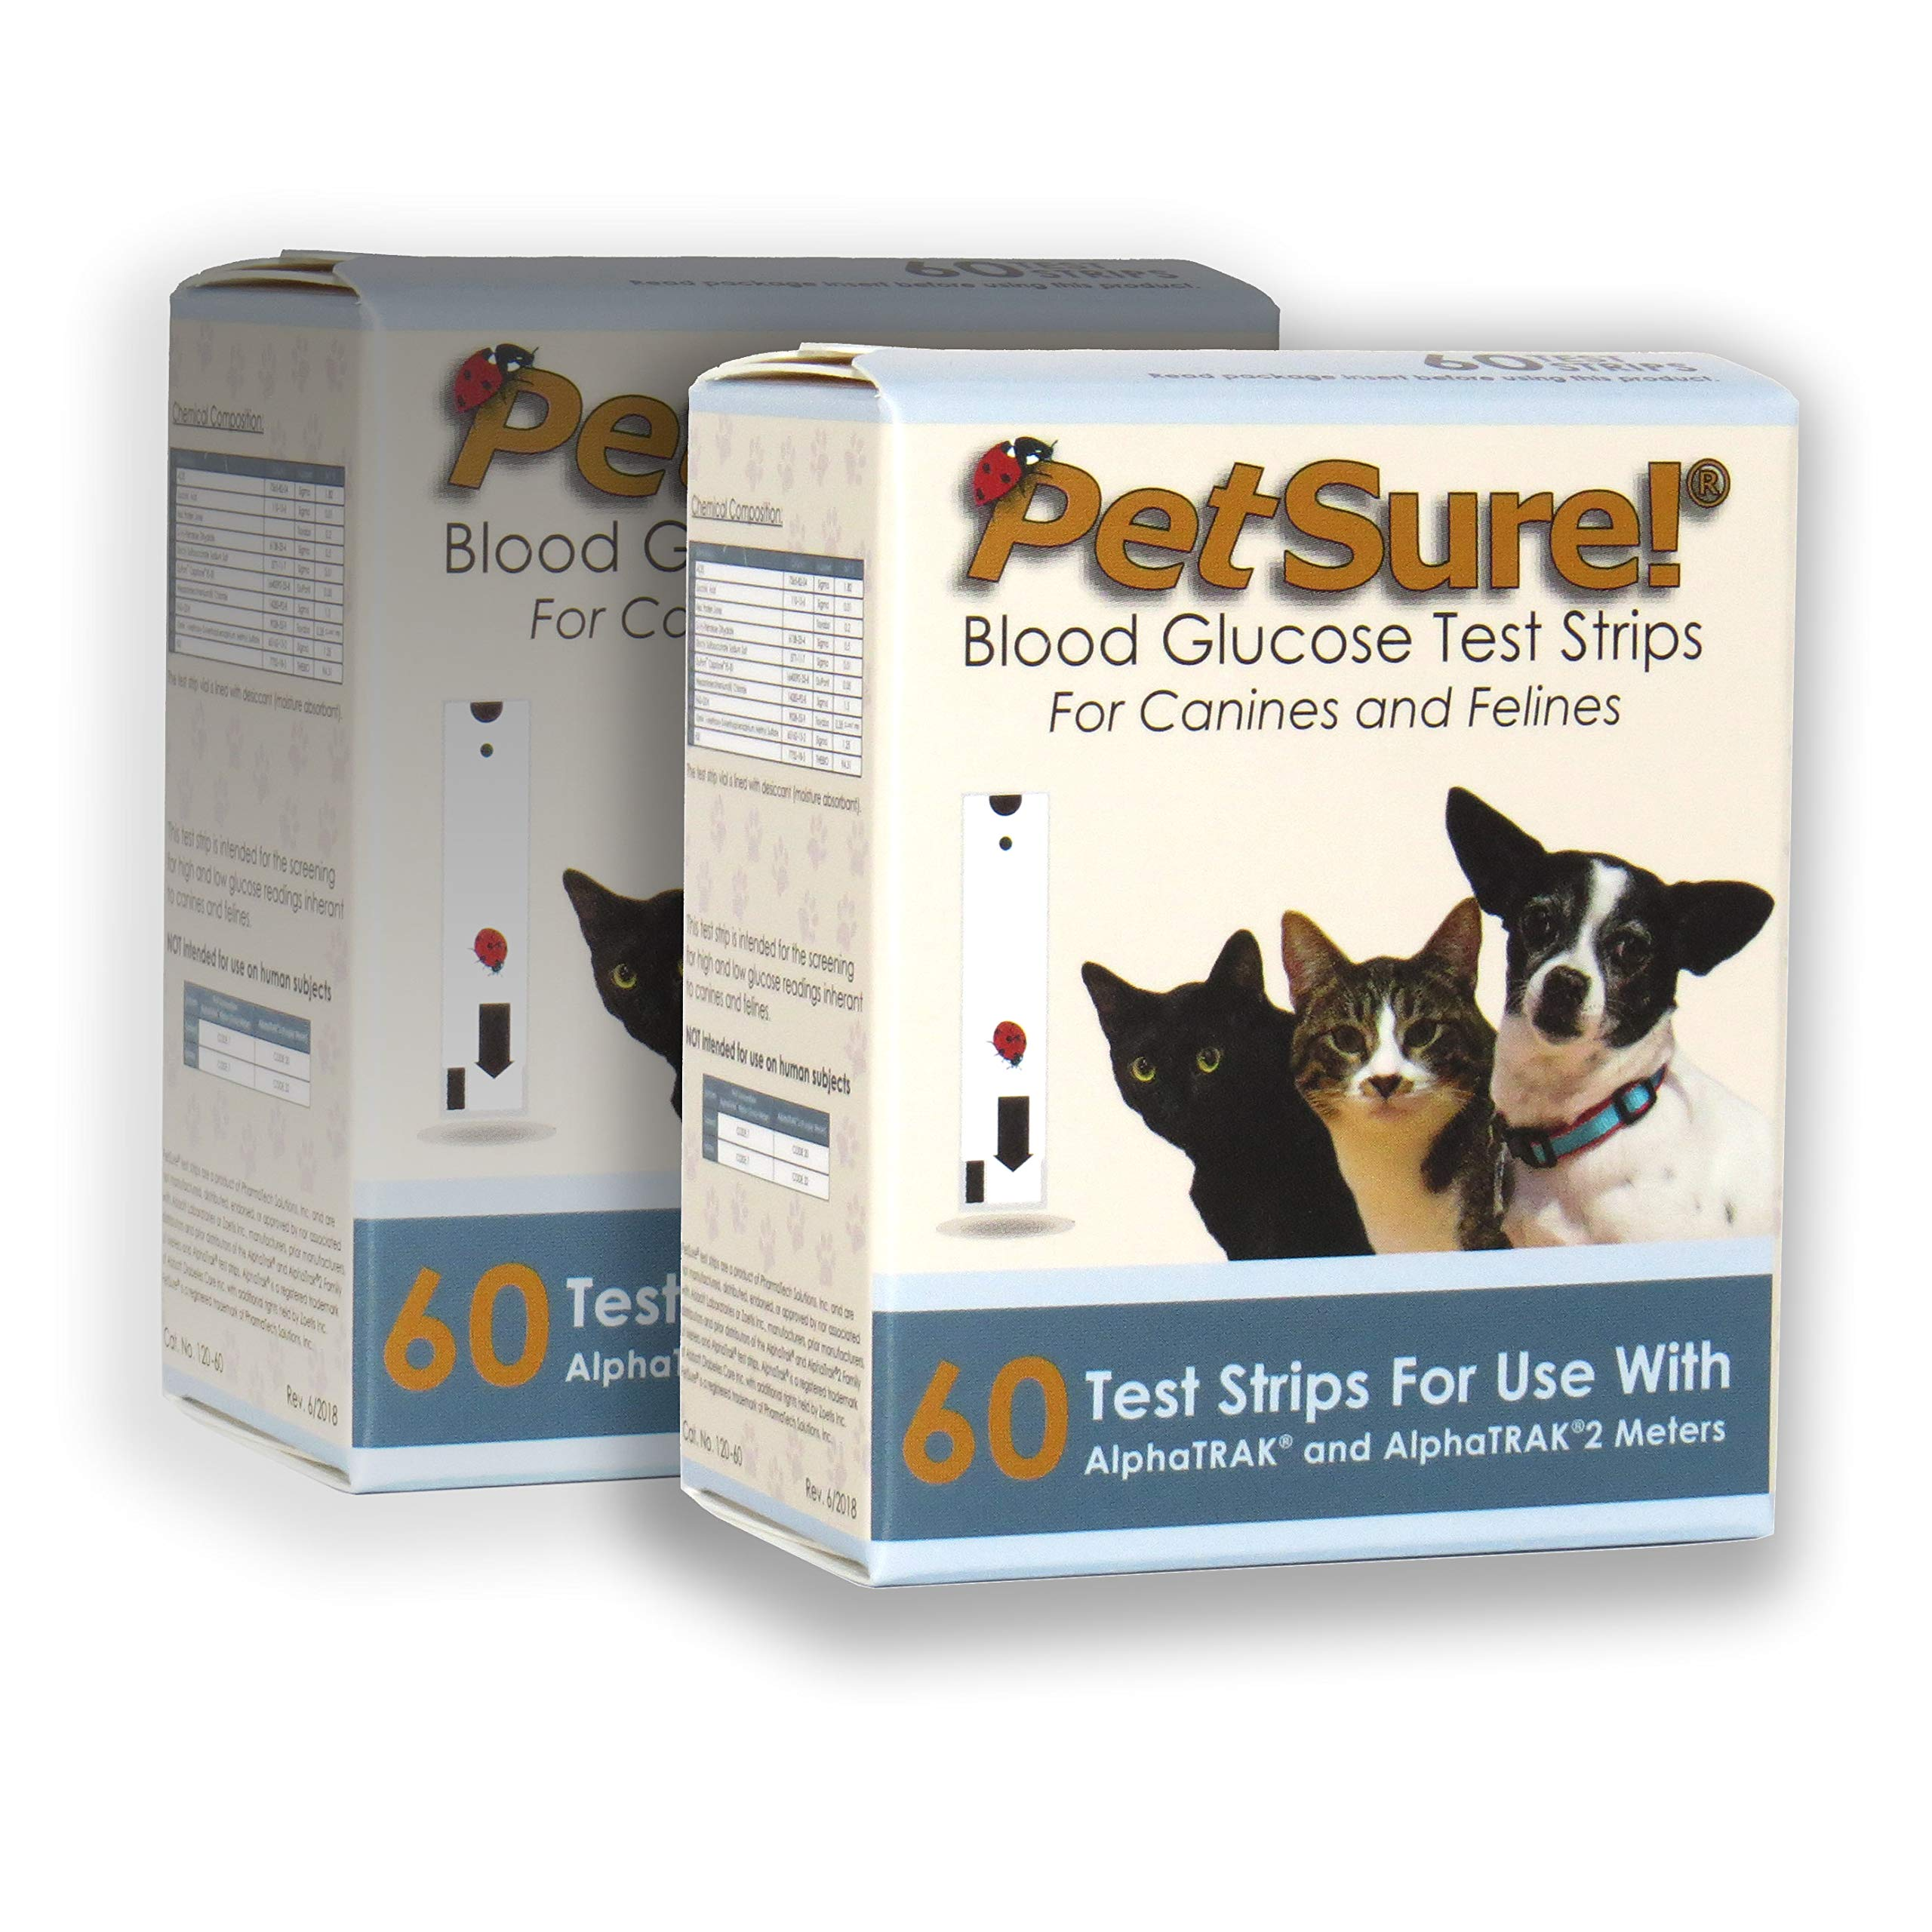 PetSure! Test Strips 60ct - Pack of 2 by PetSure!